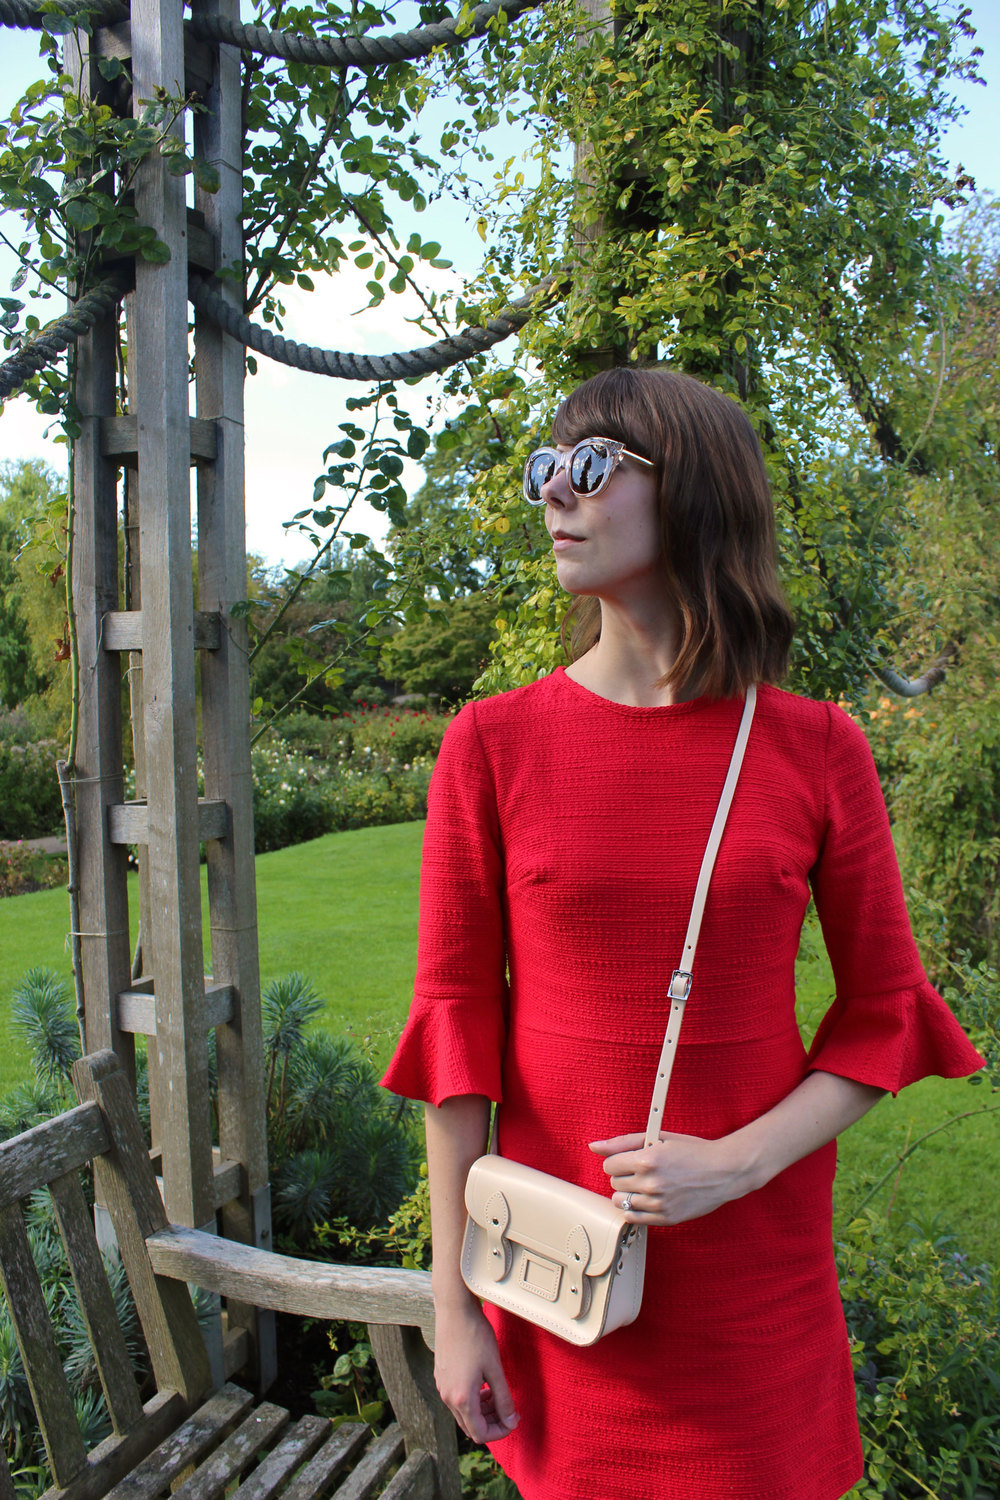 An afternoon in the rose garden at Regent's Park wearing a red dress and neutral accessories.